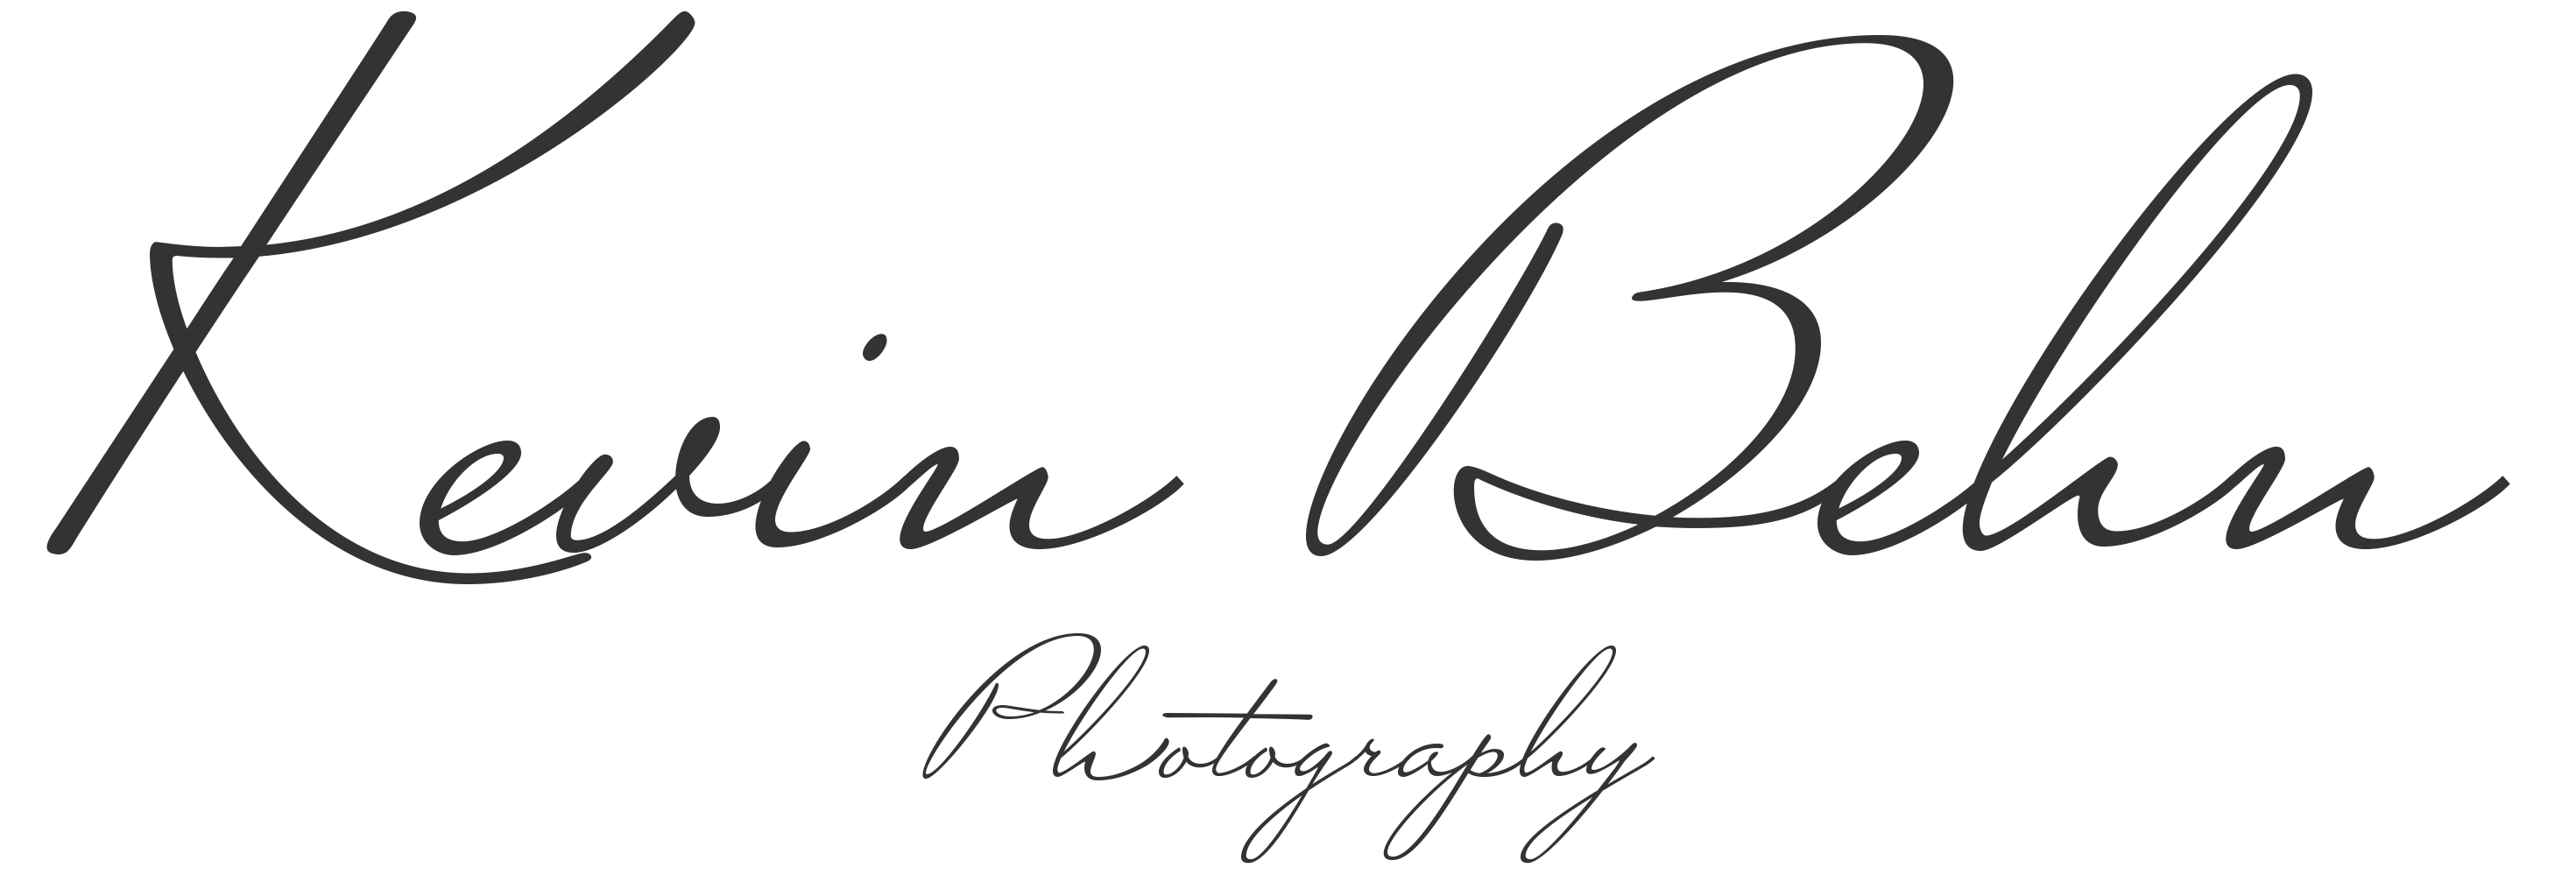 Kevin Behn Photography Logo